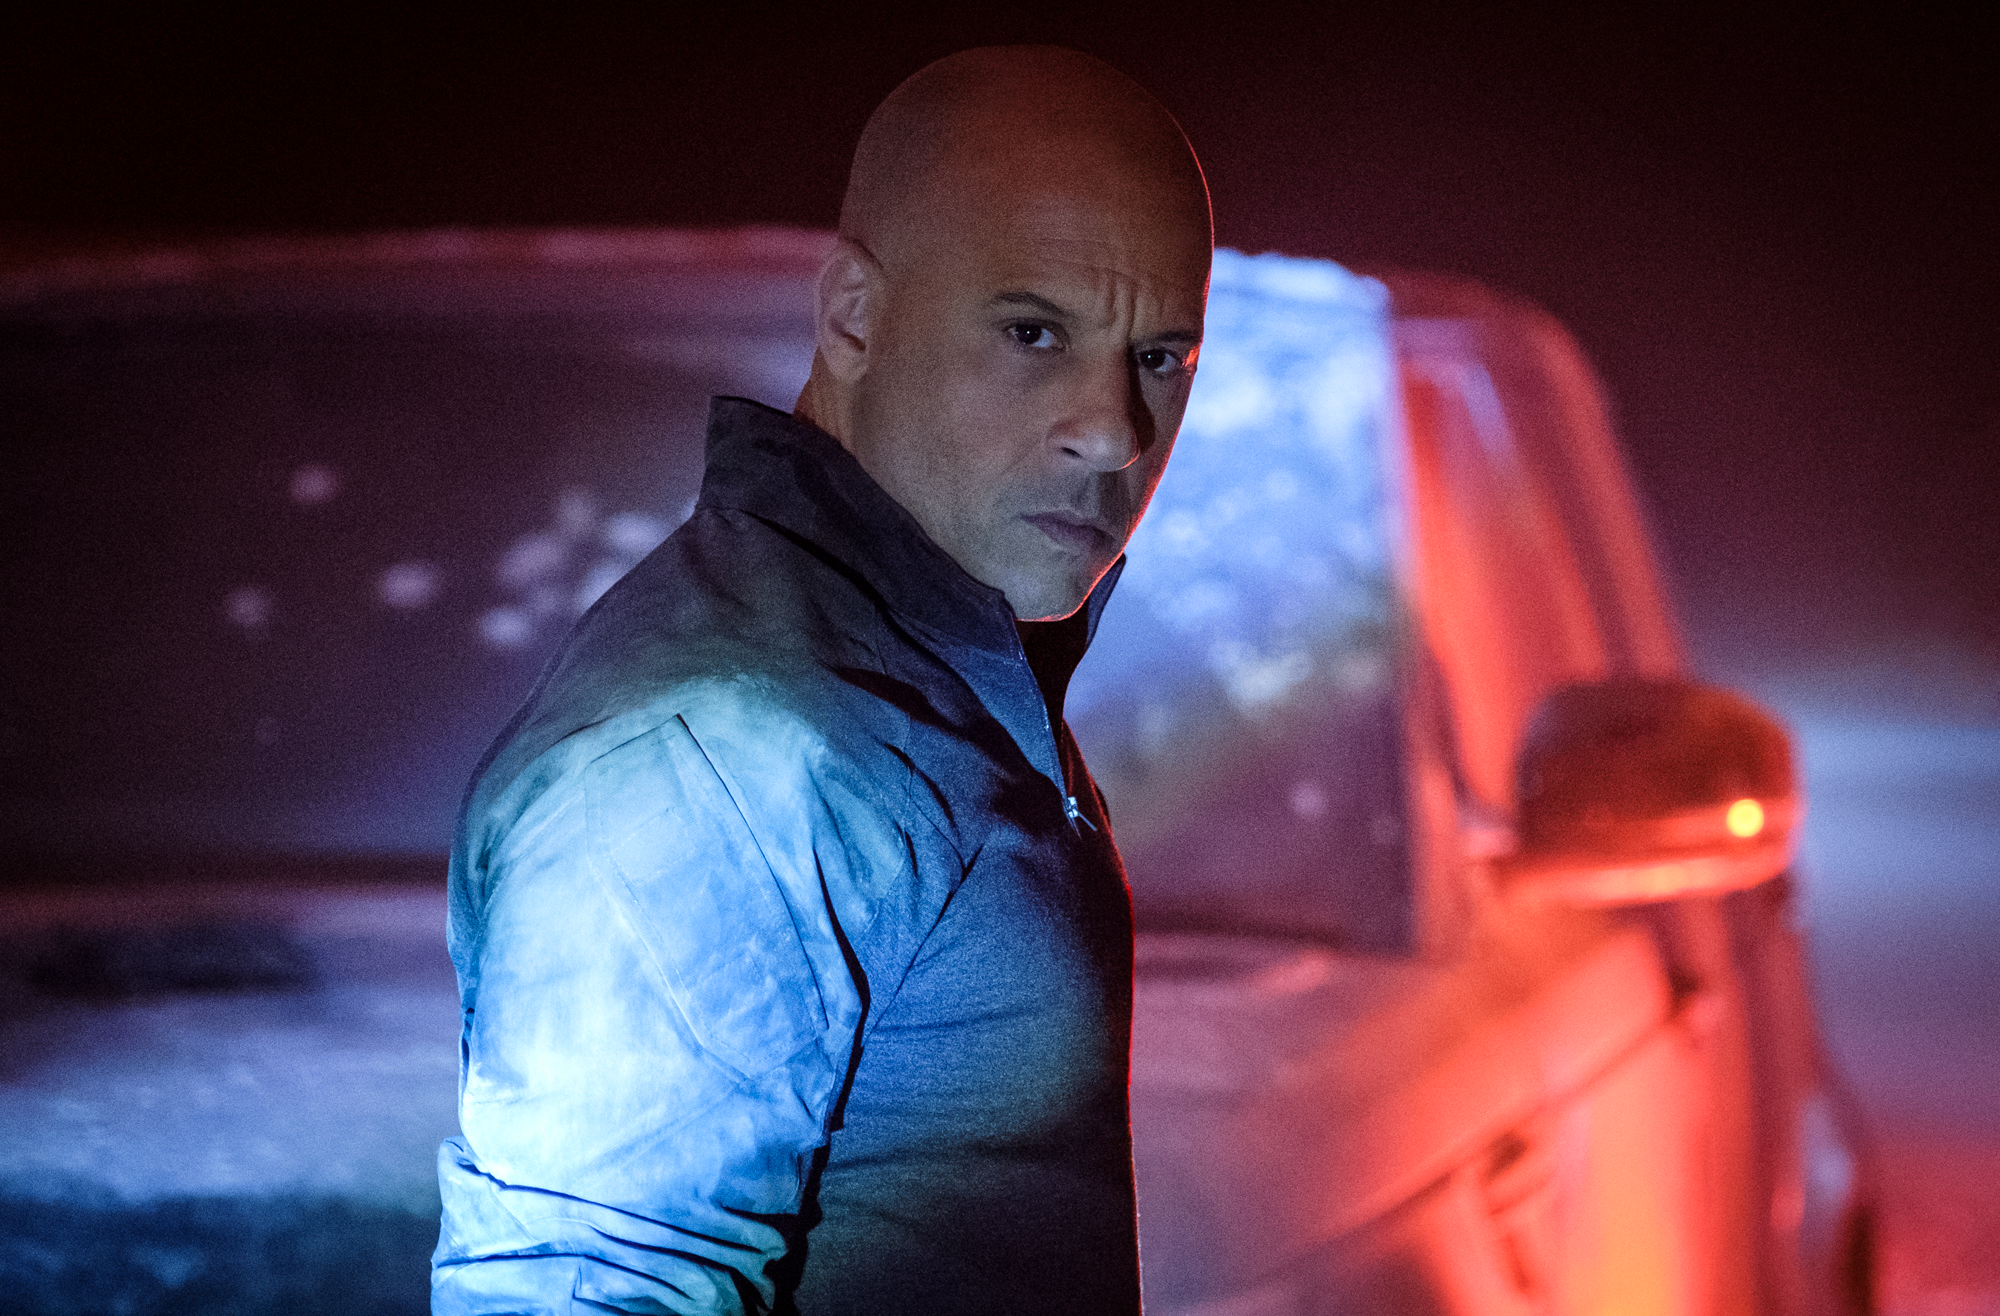 'Bloodshot' Trailer: Vin Diesel Opens Door To Whole New Universe